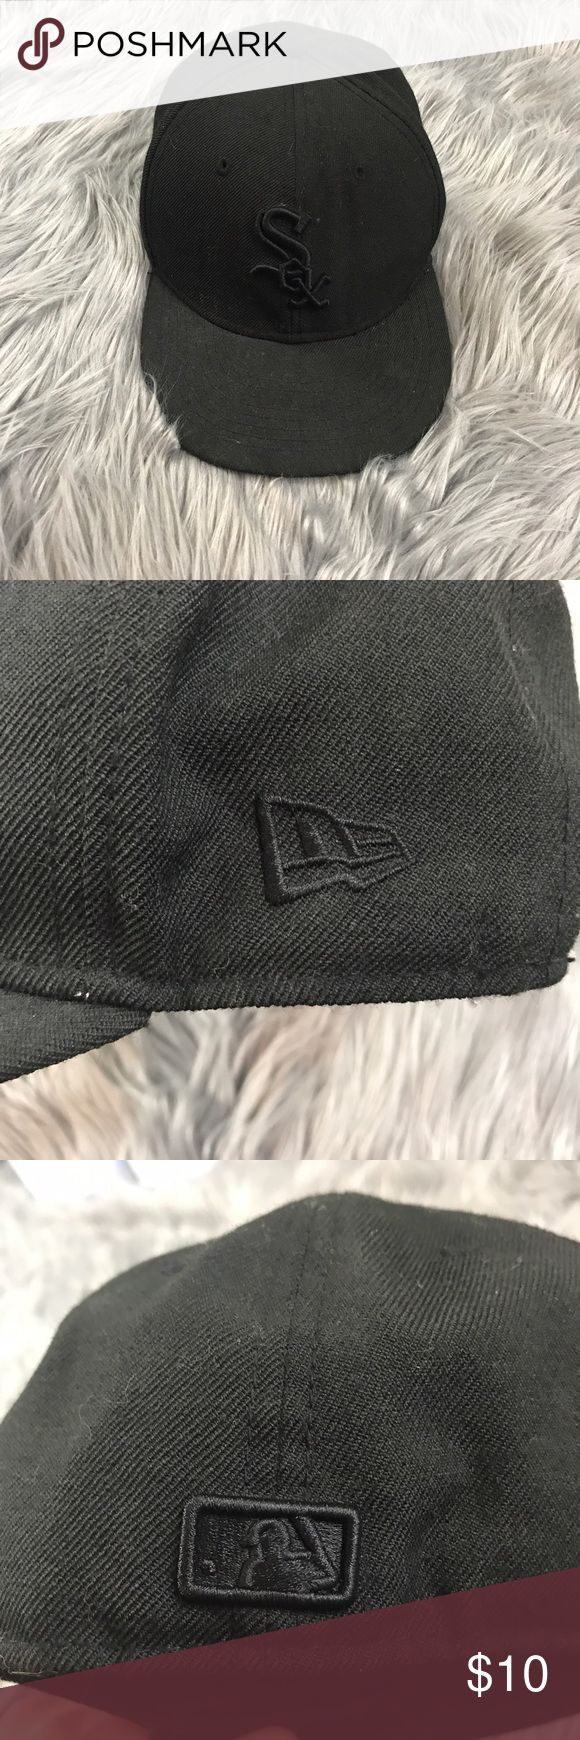 Toddler Boy New Era Sox Baseball All Black Hat Great condition! Size 6 1/2 best fit for ages 1-3 New Era Accessories Hats